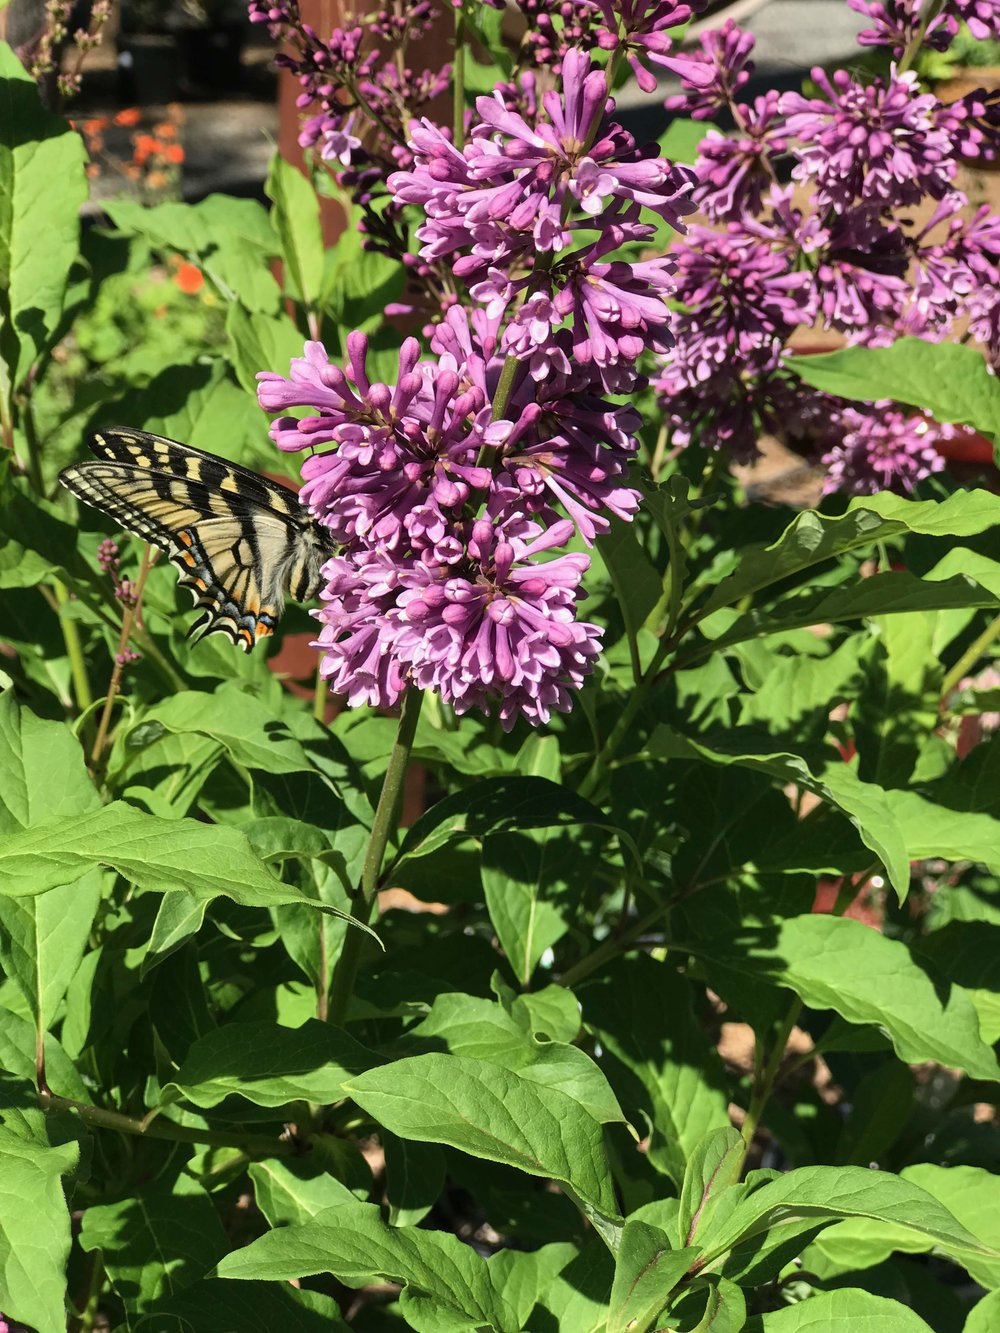 Butterfly enjoying our Lilac bush